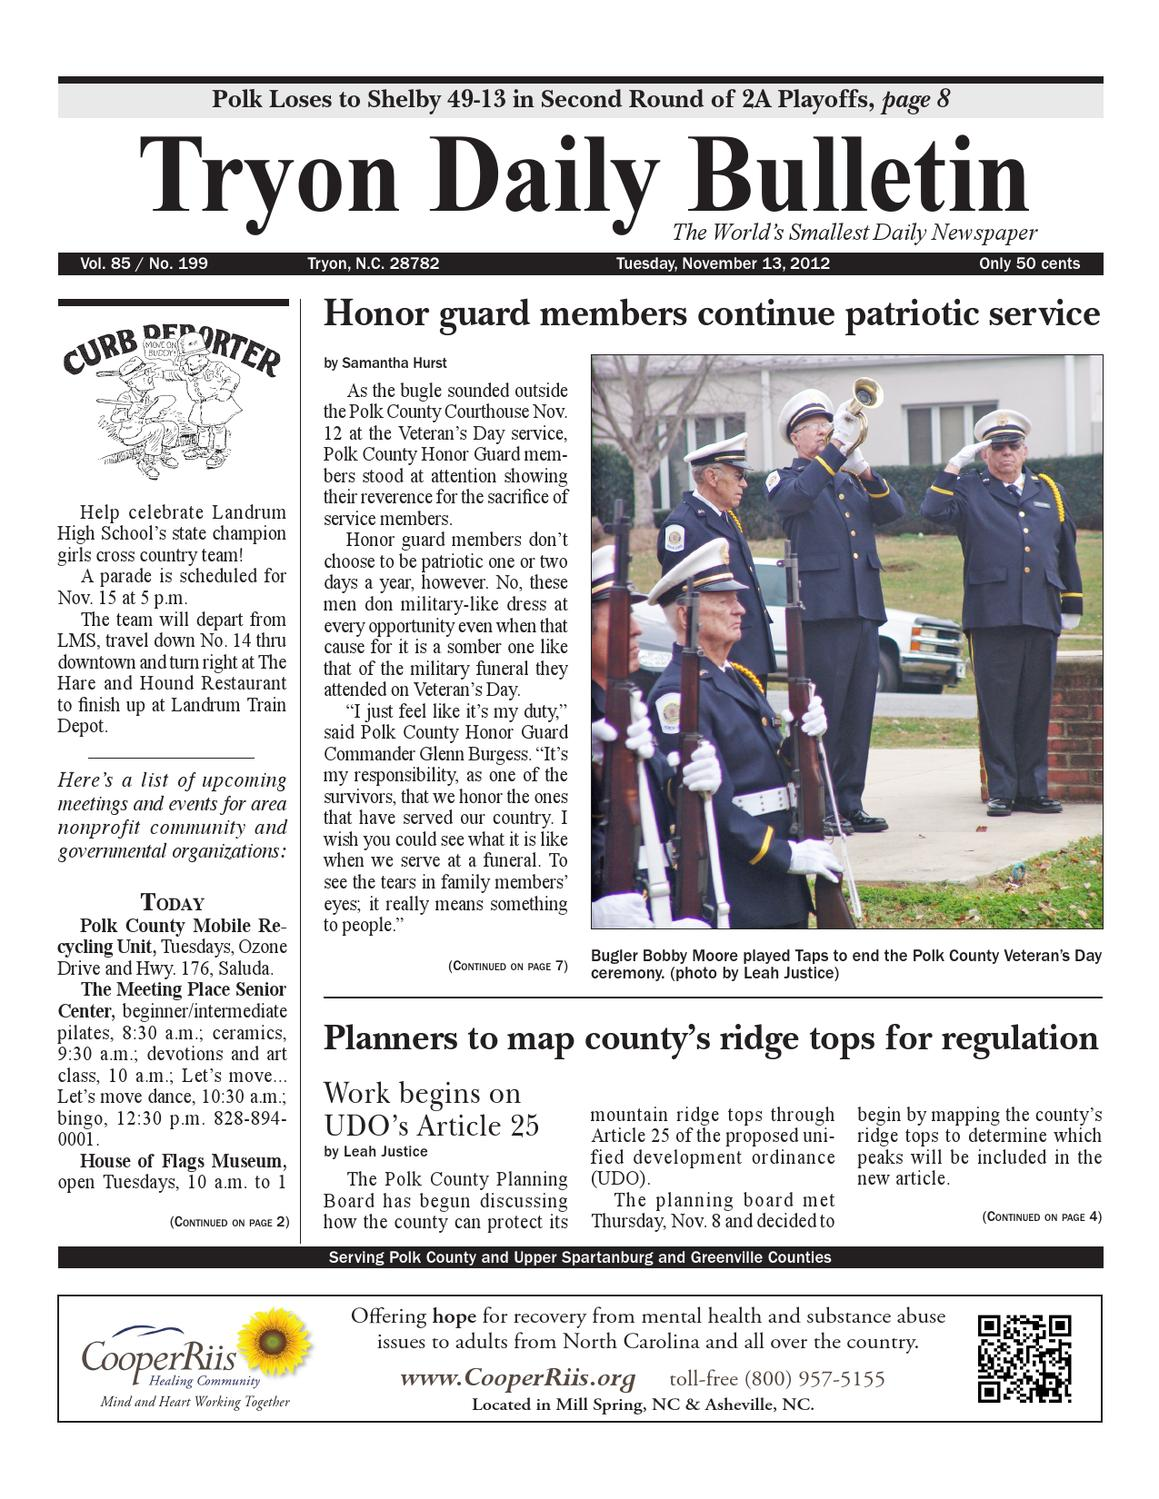 c18d9131e7be 11-13-12 Bulletin by Tryon Daily Bulletin - issuu